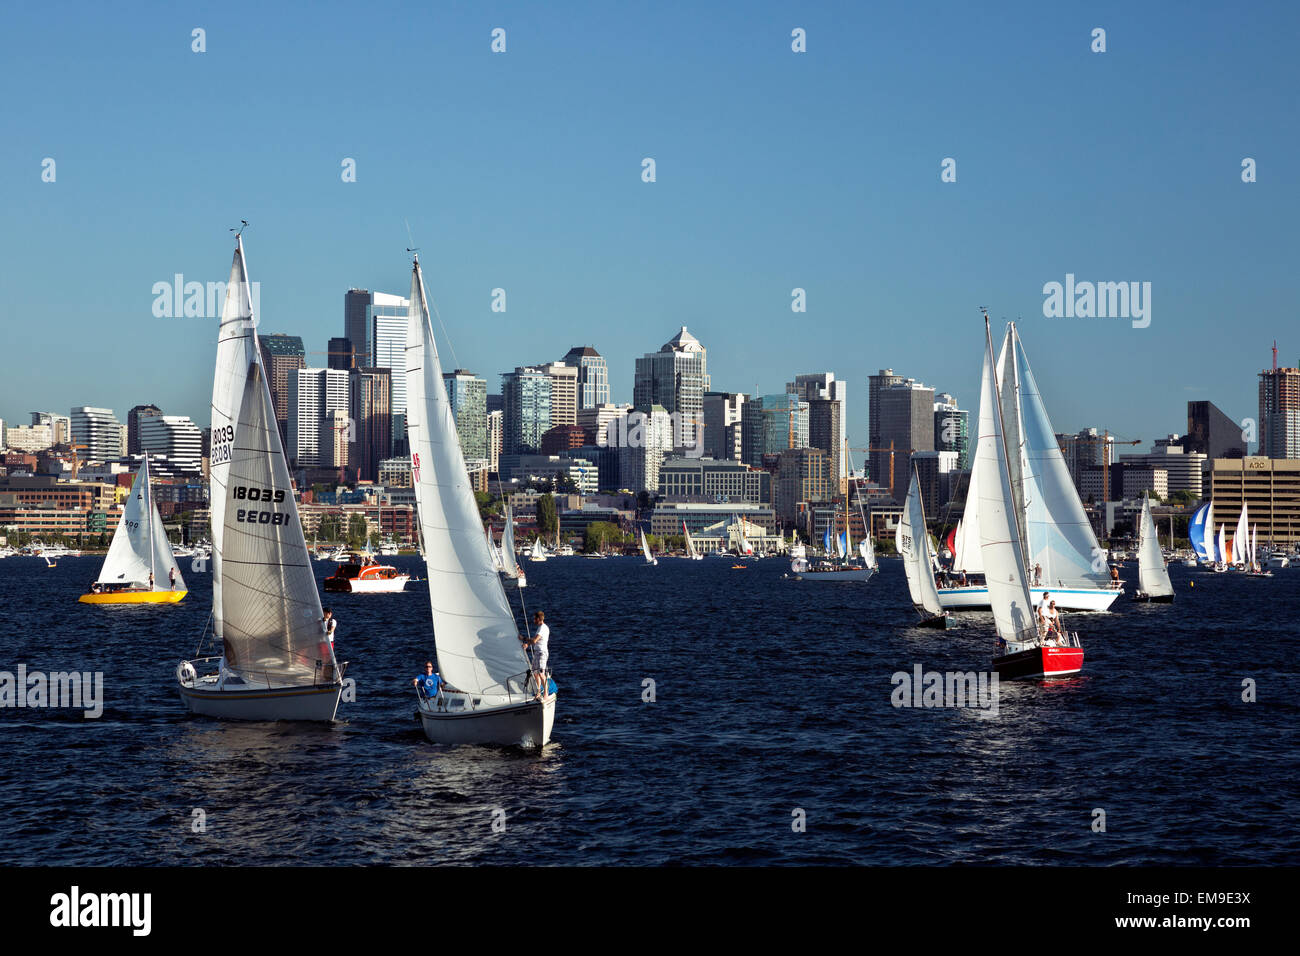 WA10385-00...WASHINGTON - The Tuesday Duck Dodge in Seattle makes for a busy evening on Lake Union. (No MR). - Stock Image